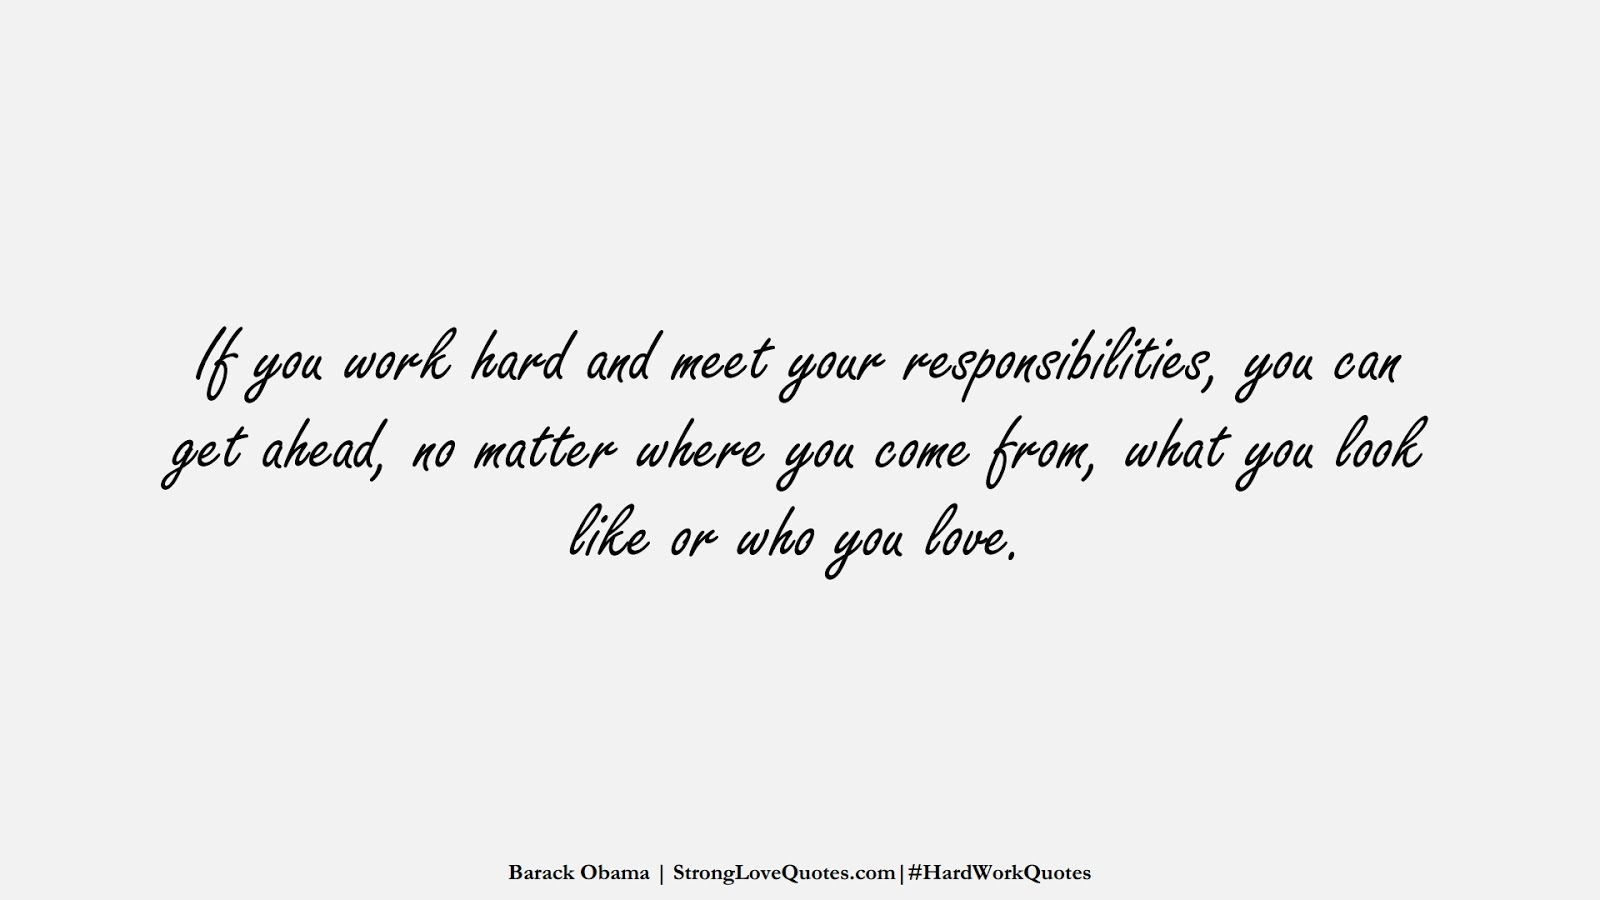 If you work hard and meet your responsibilities, you can get ahead, no matter where you come from, what you look like or who you love. (Barack Obama);  #HardWorkQuotes